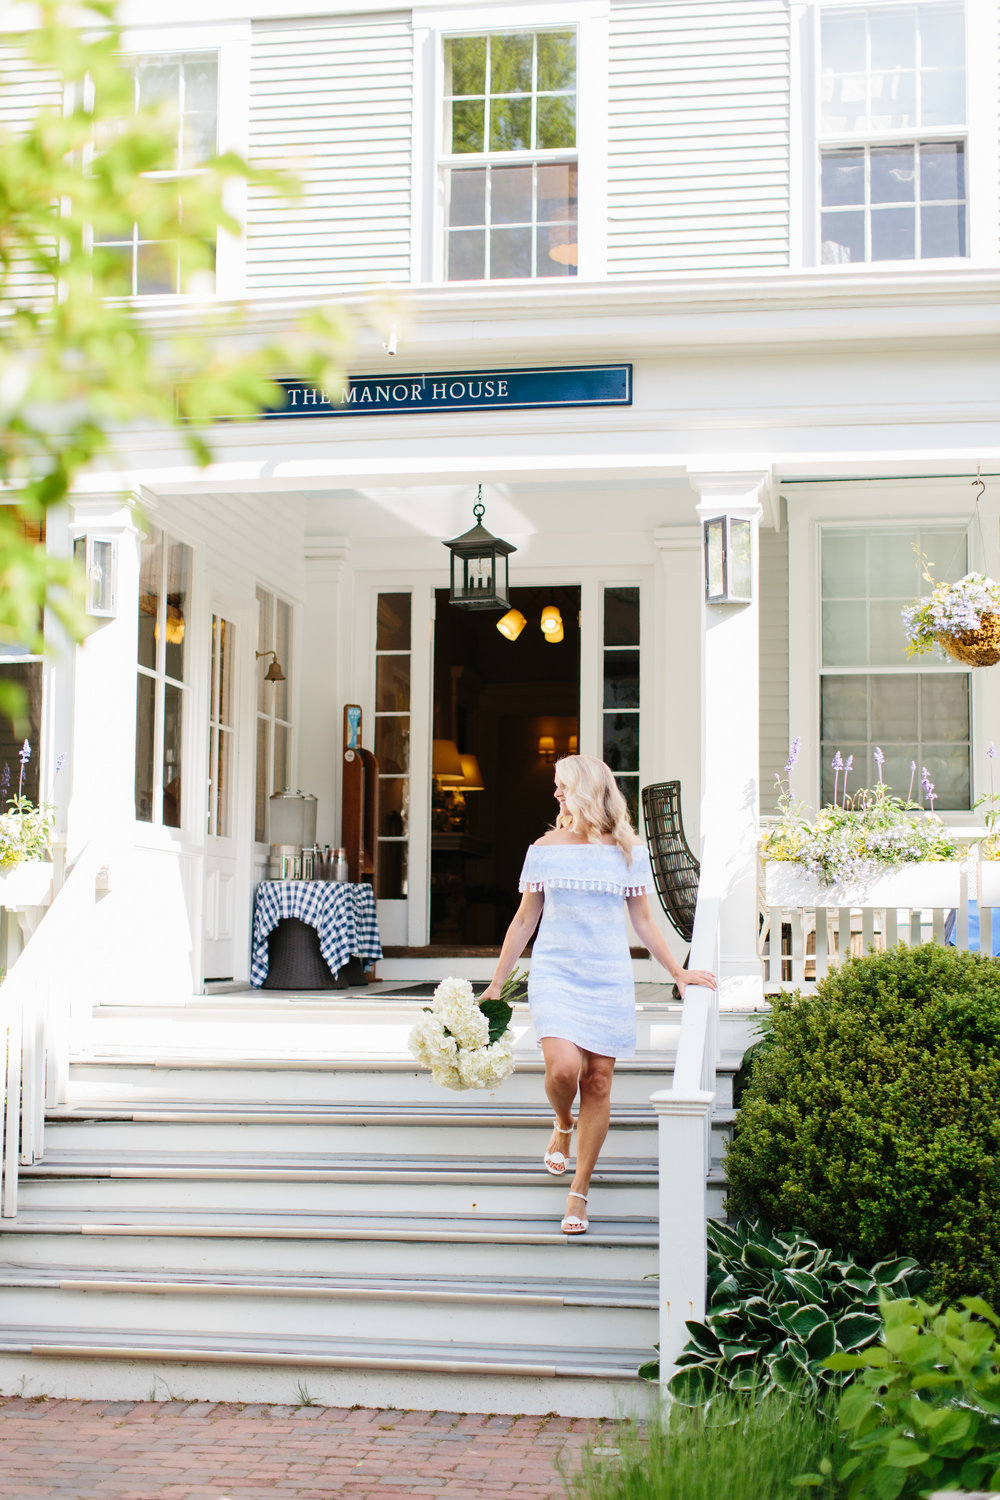 Nantucket Hotels New England Summer Attire Beach Outfits Abby Capalbo | Photography: Erin McGinn